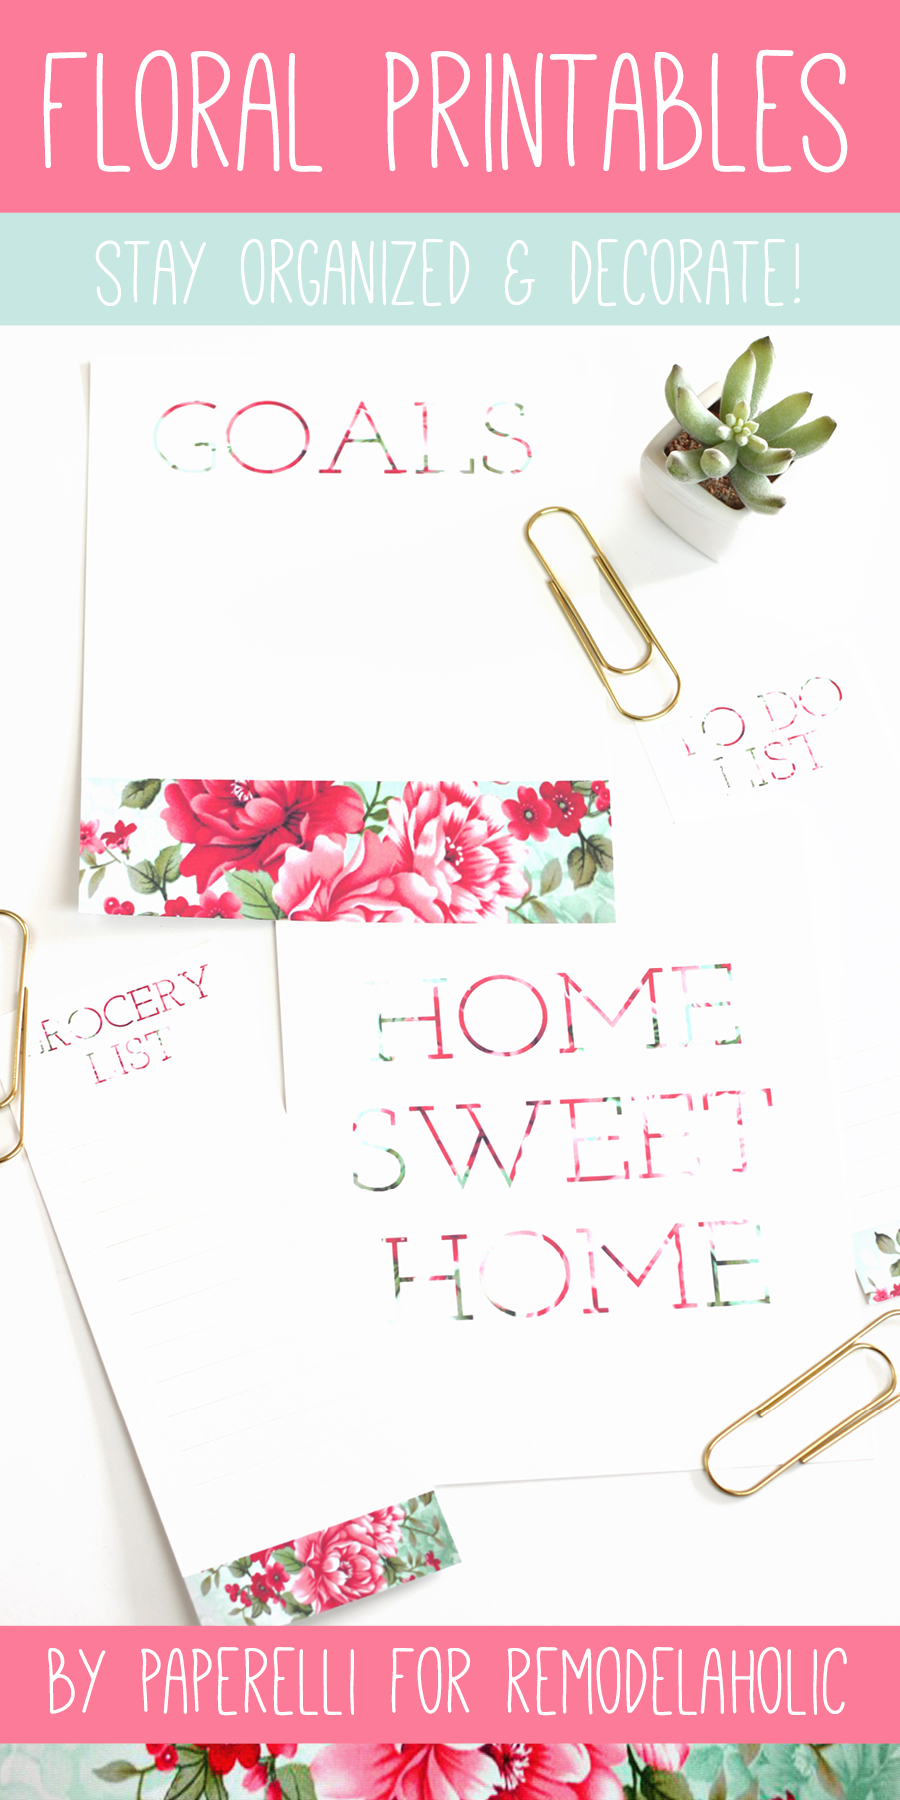 floral printables for remodelaholic by paperelli todo grocerylist goals